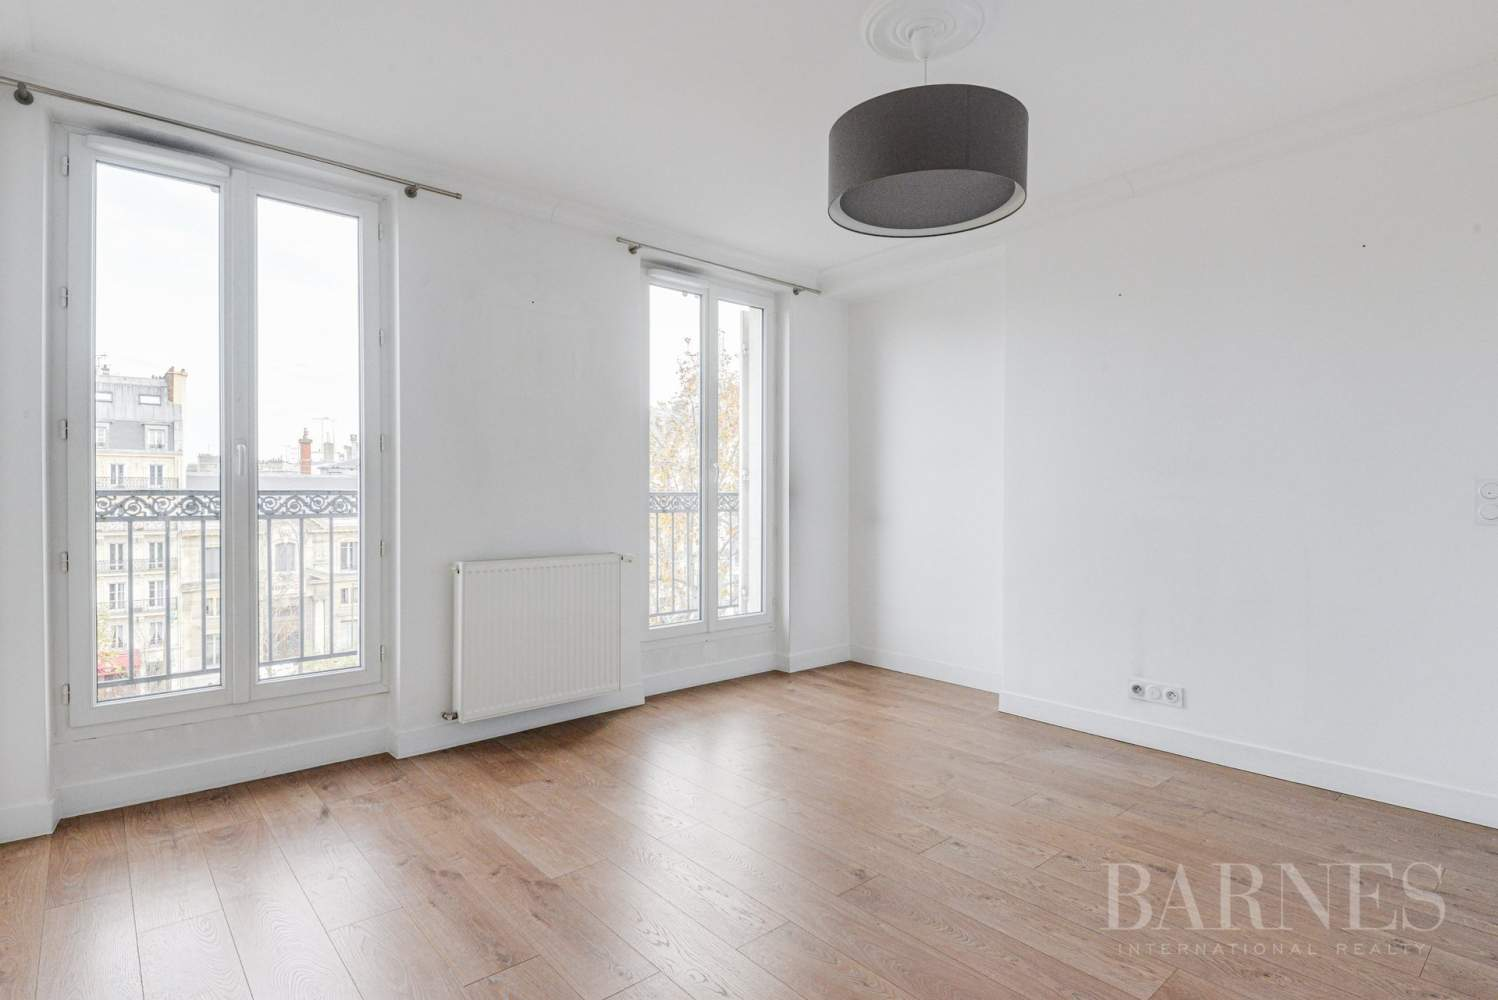 Neuilly-sur-Seine  - Appartement 5 Pièces 3 Chambres - picture 3